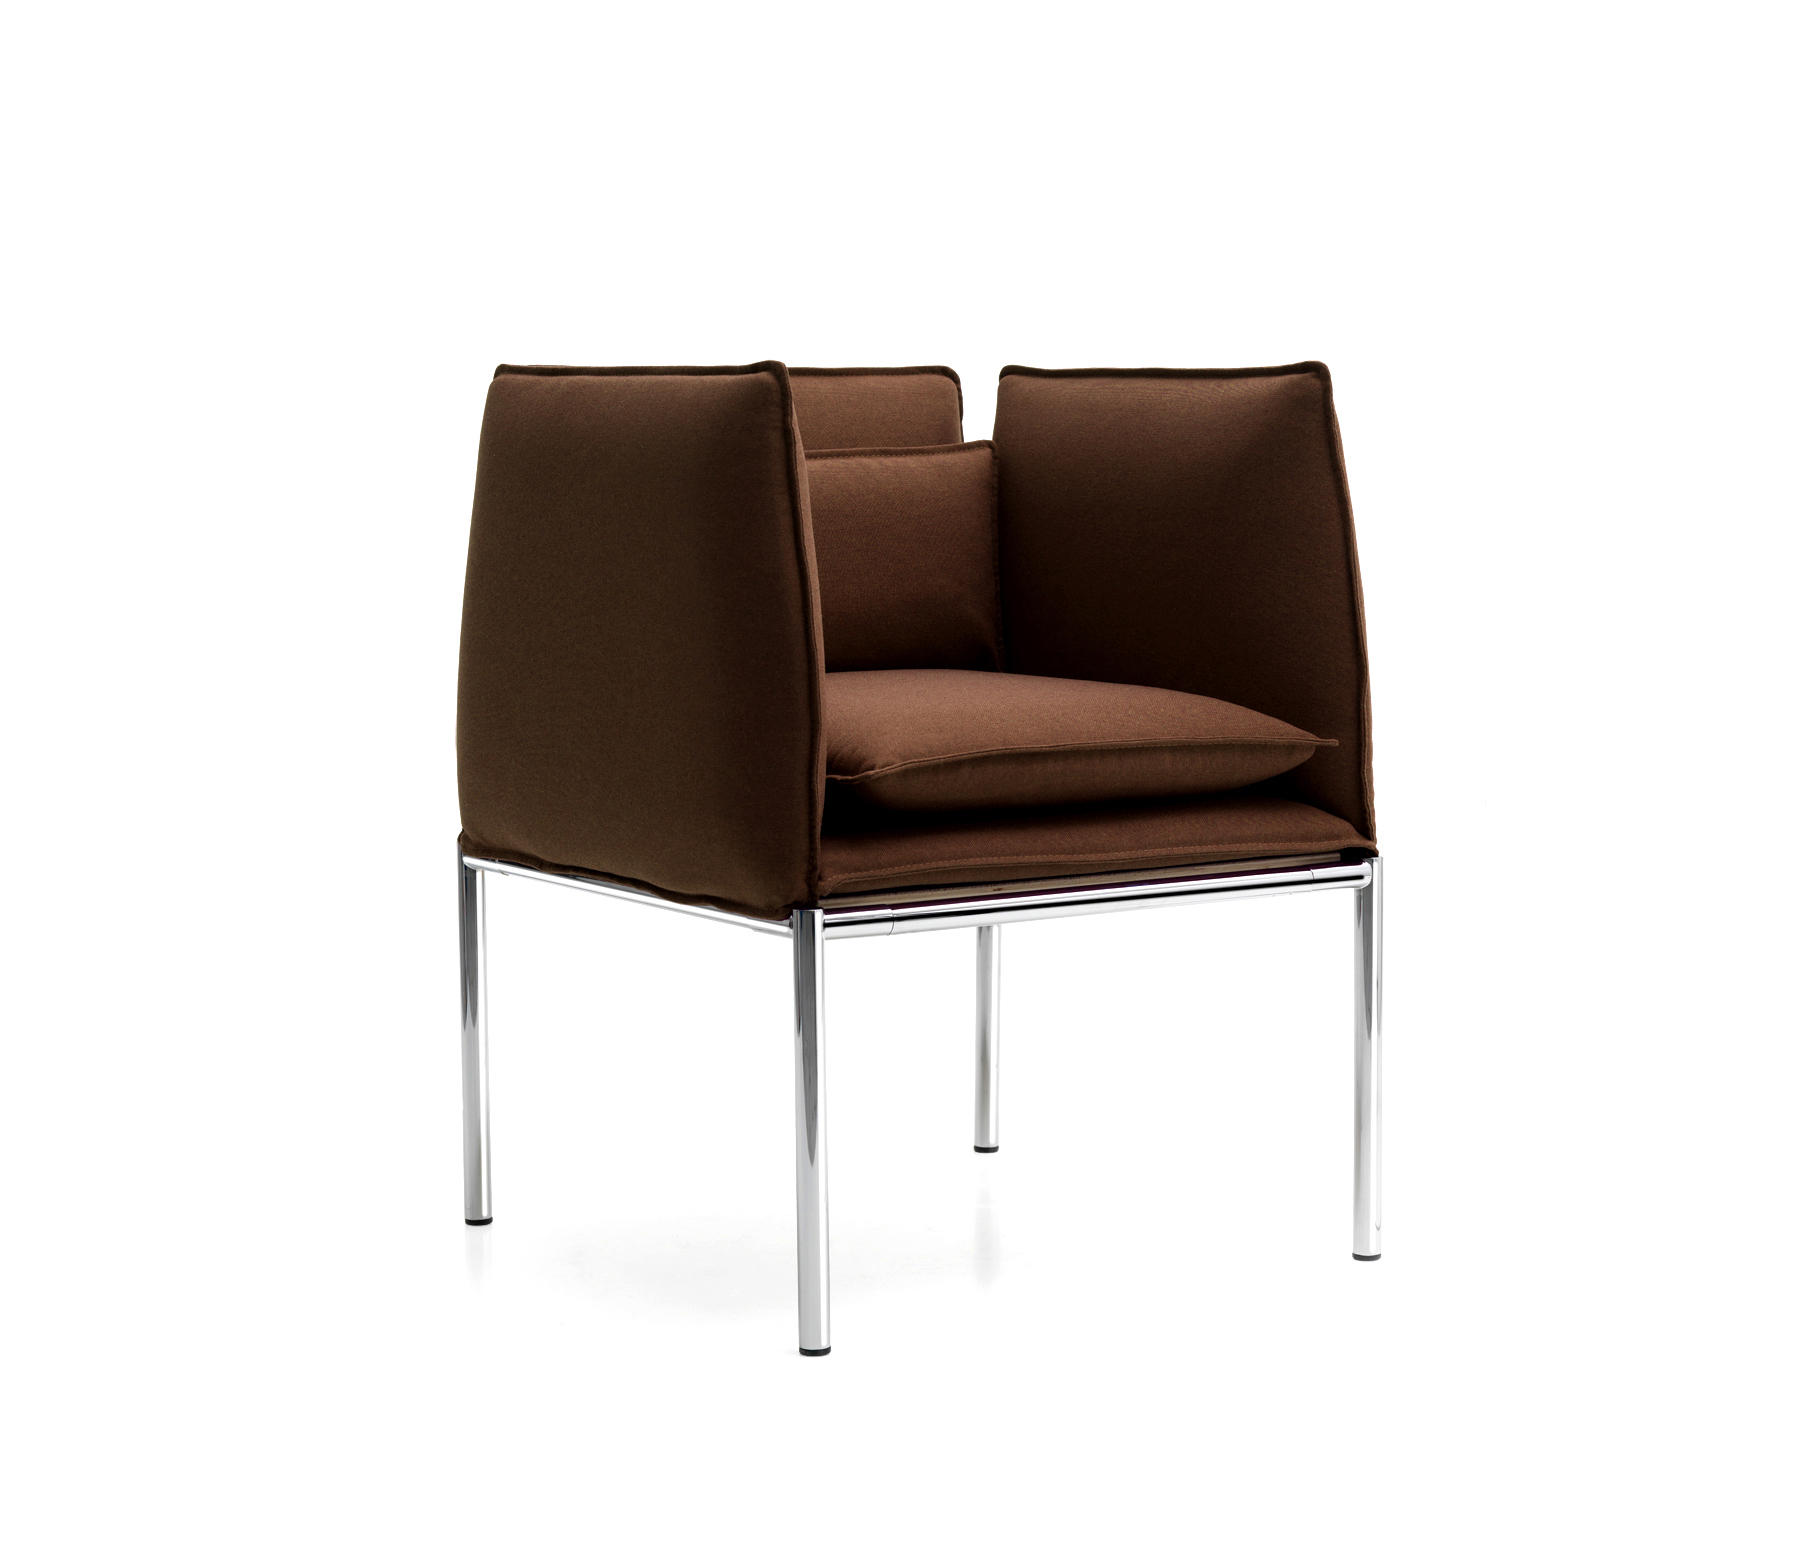 Box 121 Armchairs From Quinti Sedute Architonic